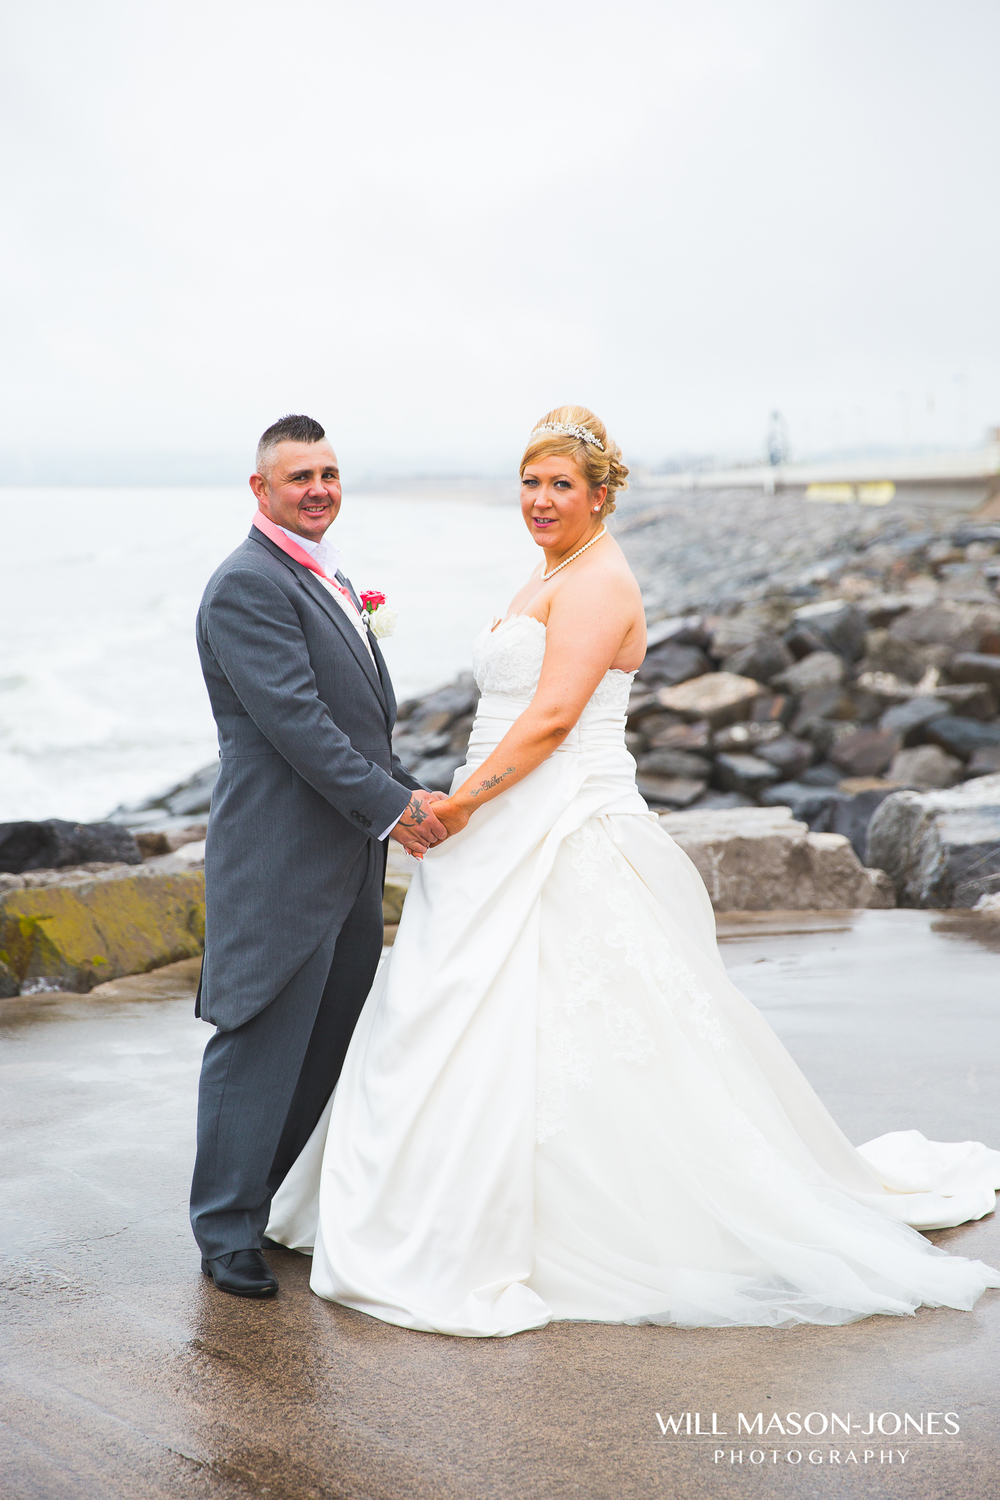 aberavonwedding-508.jpg